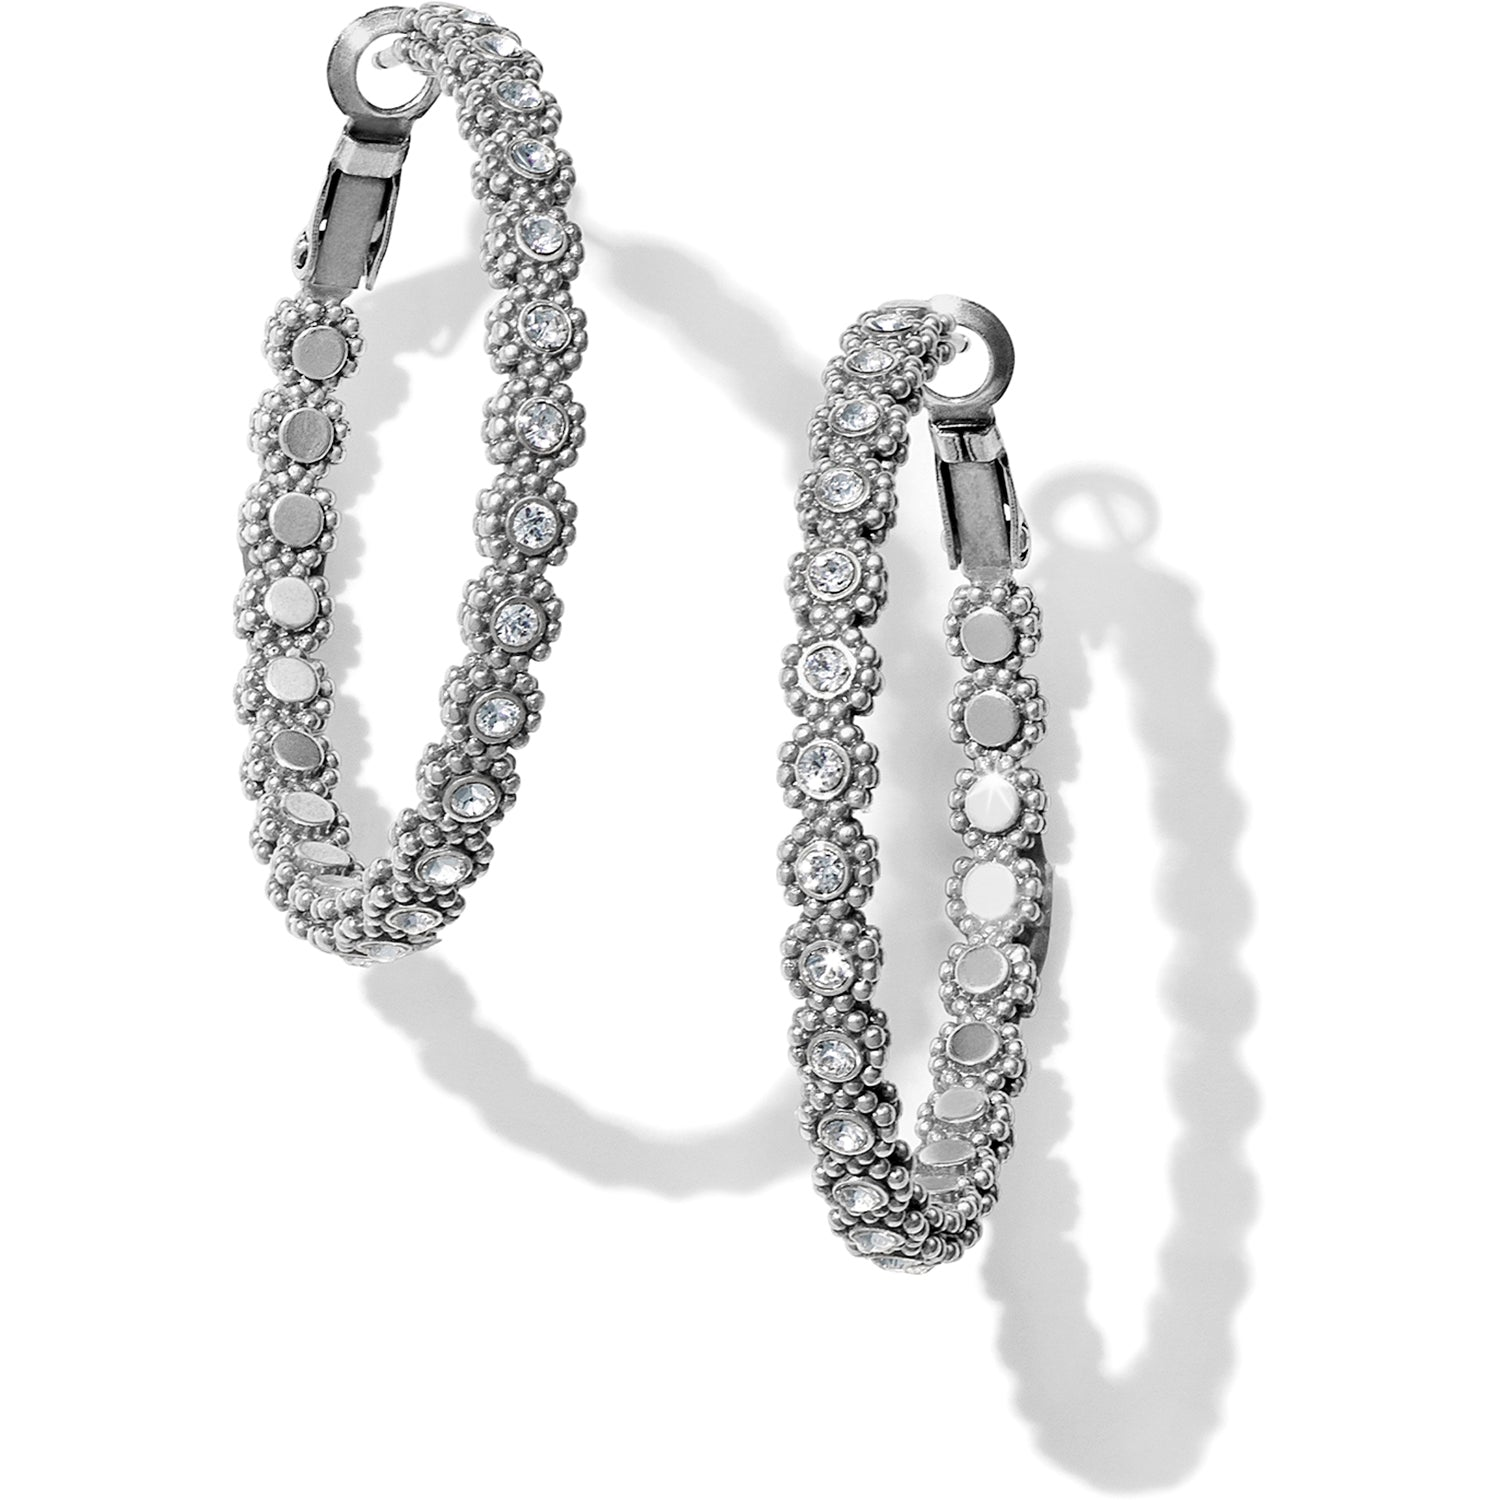 Brighton Twinkle Splendor Medium Hoop Earrings Within a delicately floral motif, crystals outline these medium lacy hoops for an ultra feminine look.